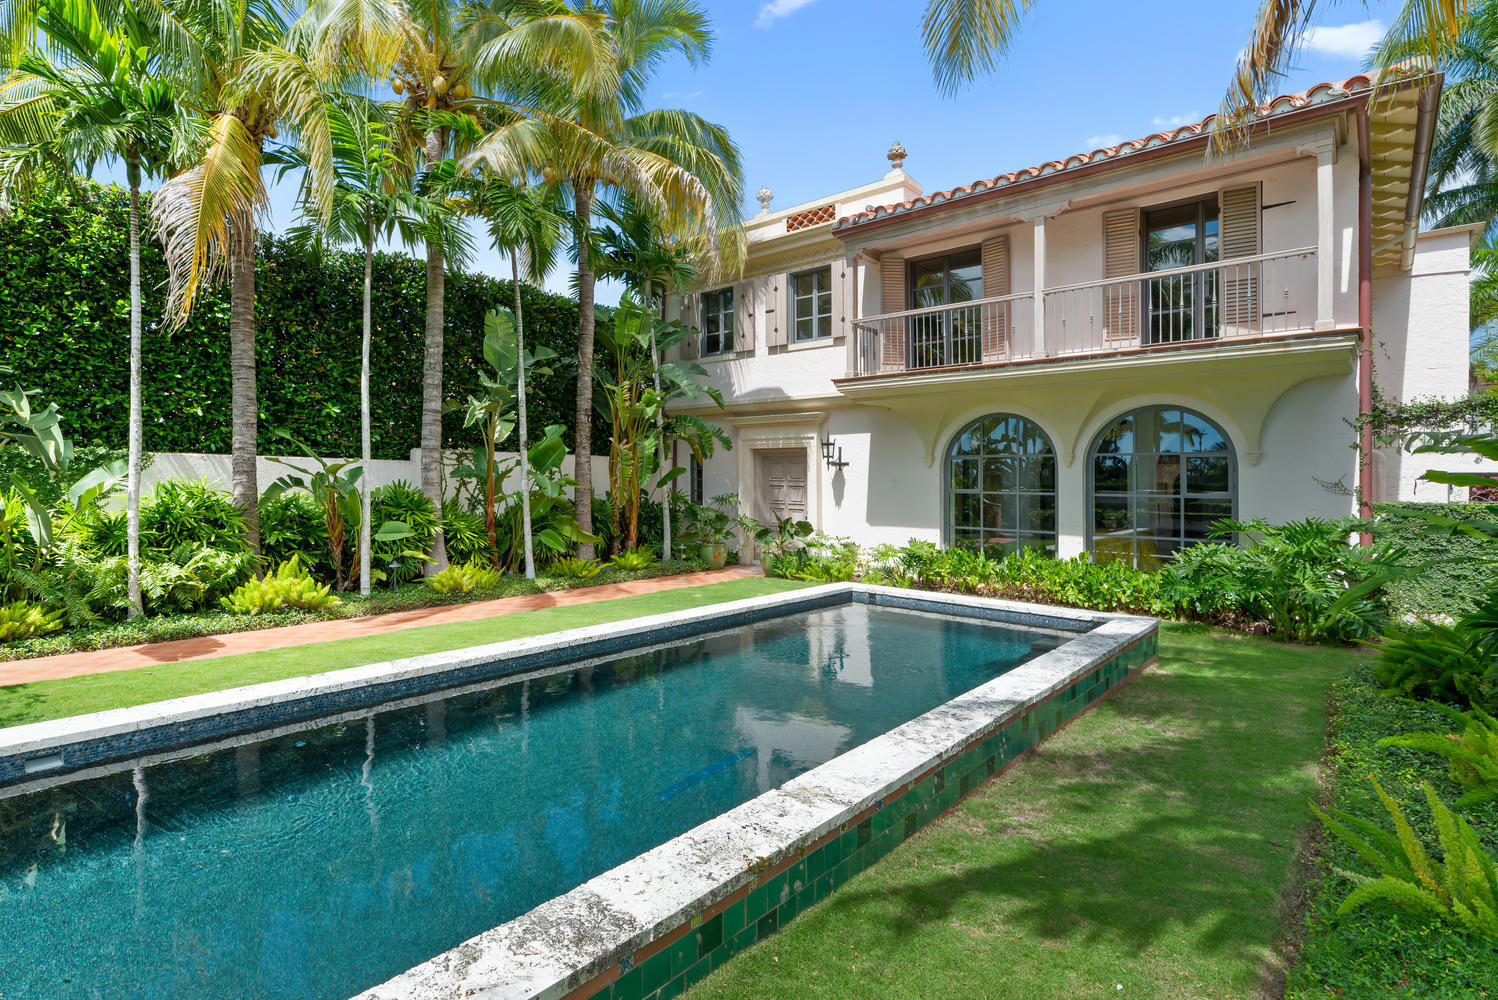 9 Golfview Road, Palm Beach, Florida 33480, 4 Bedrooms Bedrooms, ,4 BathroomsBathrooms,Rental,For Rent,Golfview,RX-10575902